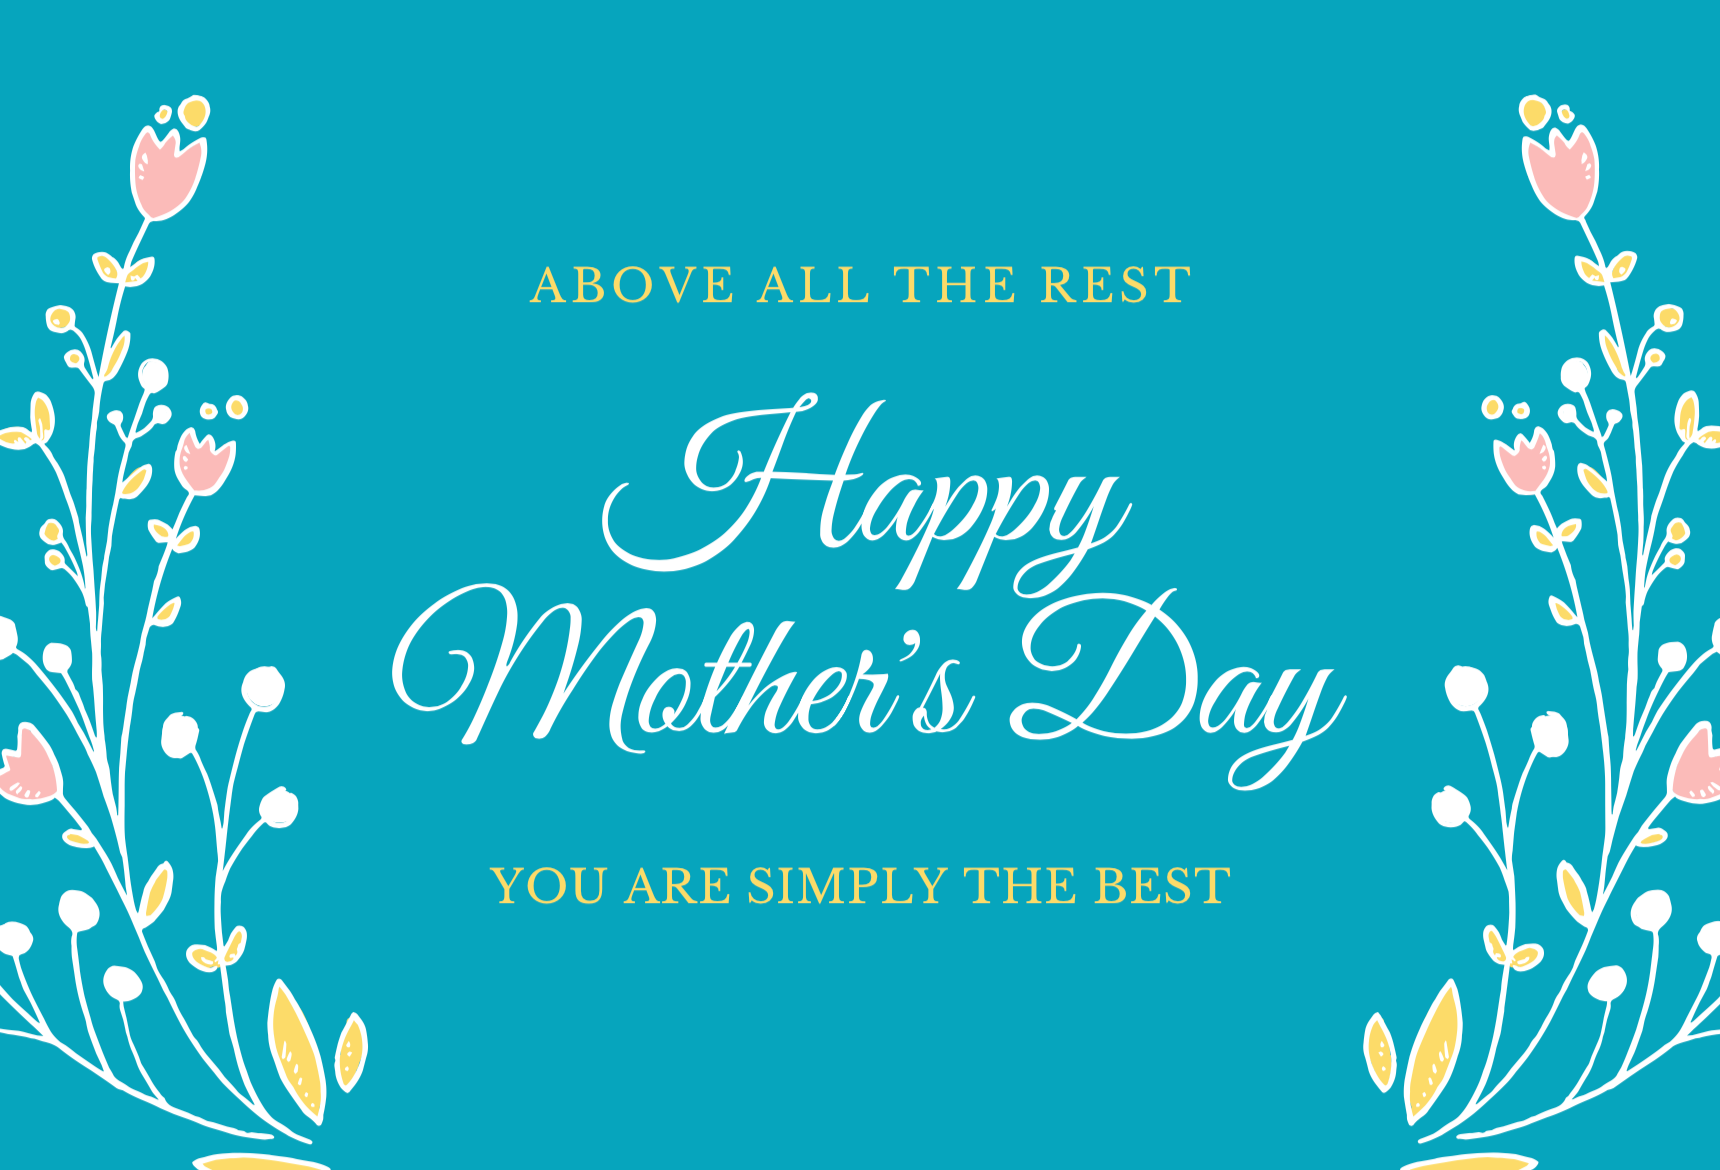 3 Mother's Day Marketing Plans to Help You Execute Your Own